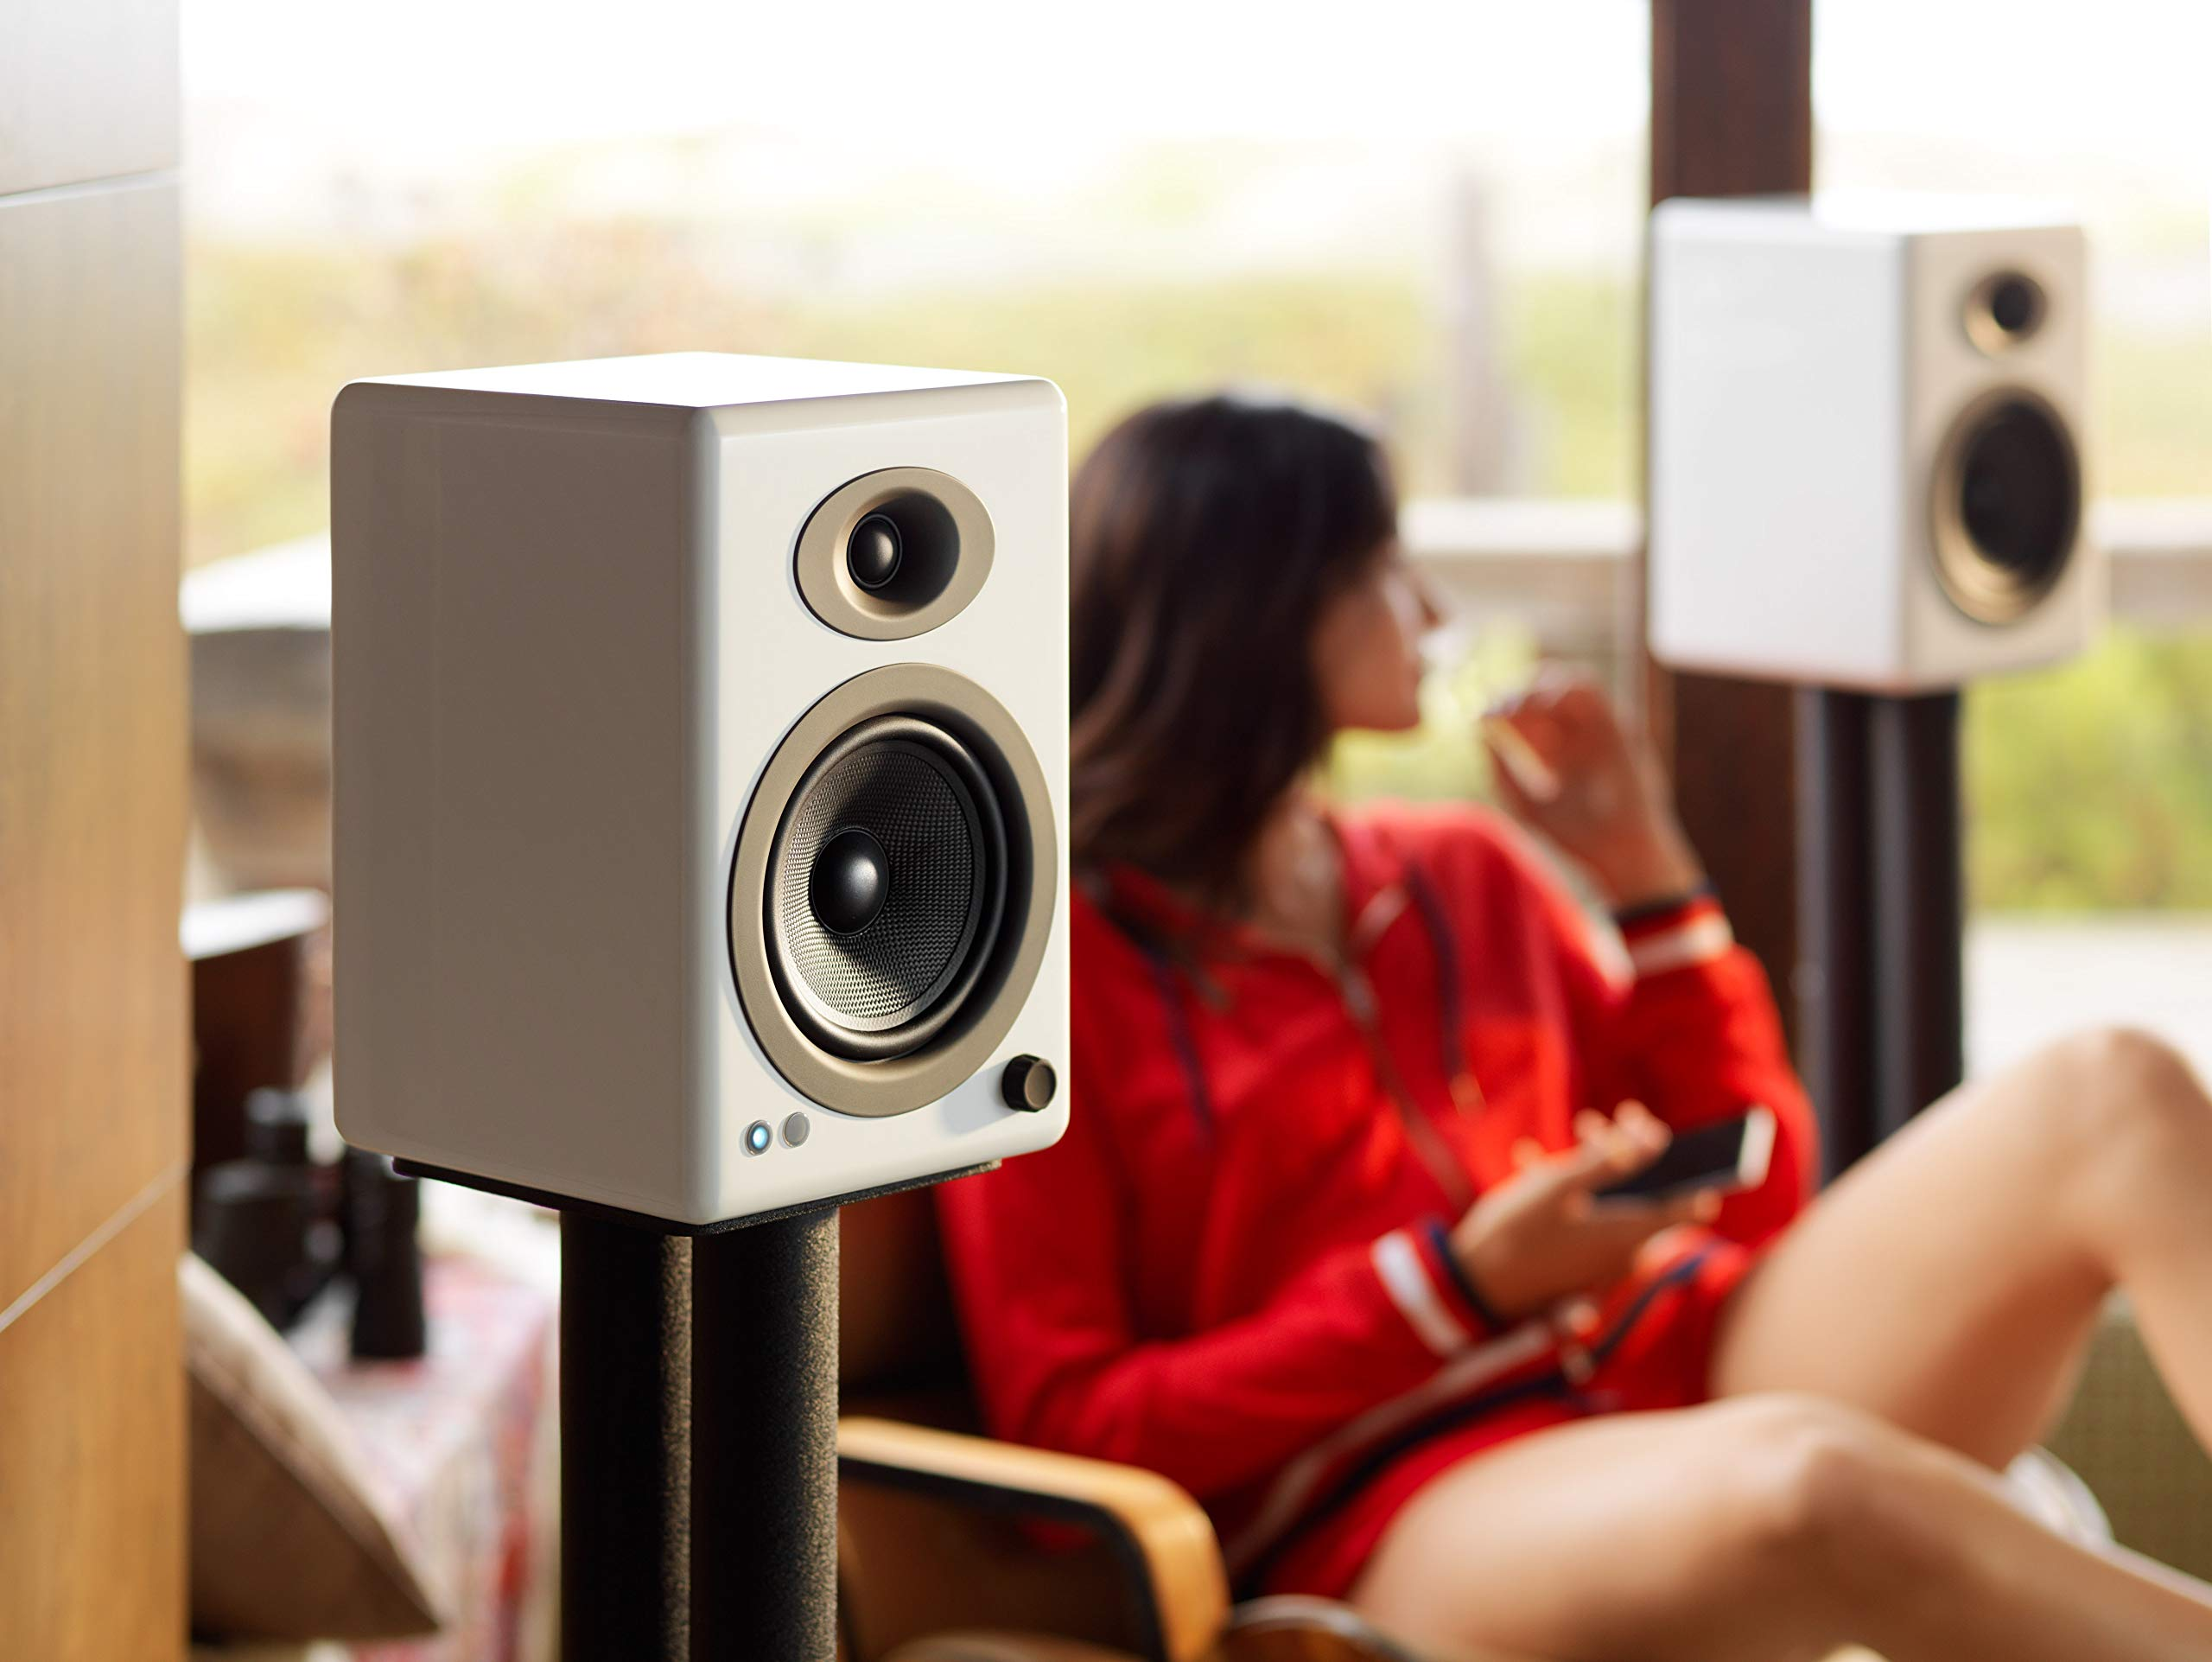 Audioengine A5+ 150W Wireless Powered Bookshelf Speakers   Built-in Analog Amplifier   aptX HD Bluetooth 24 Bit DAC, RCA and 3.5mm inputs   Solid Aluminium Remote Control   Cables Included by Audioengine (Image #5)